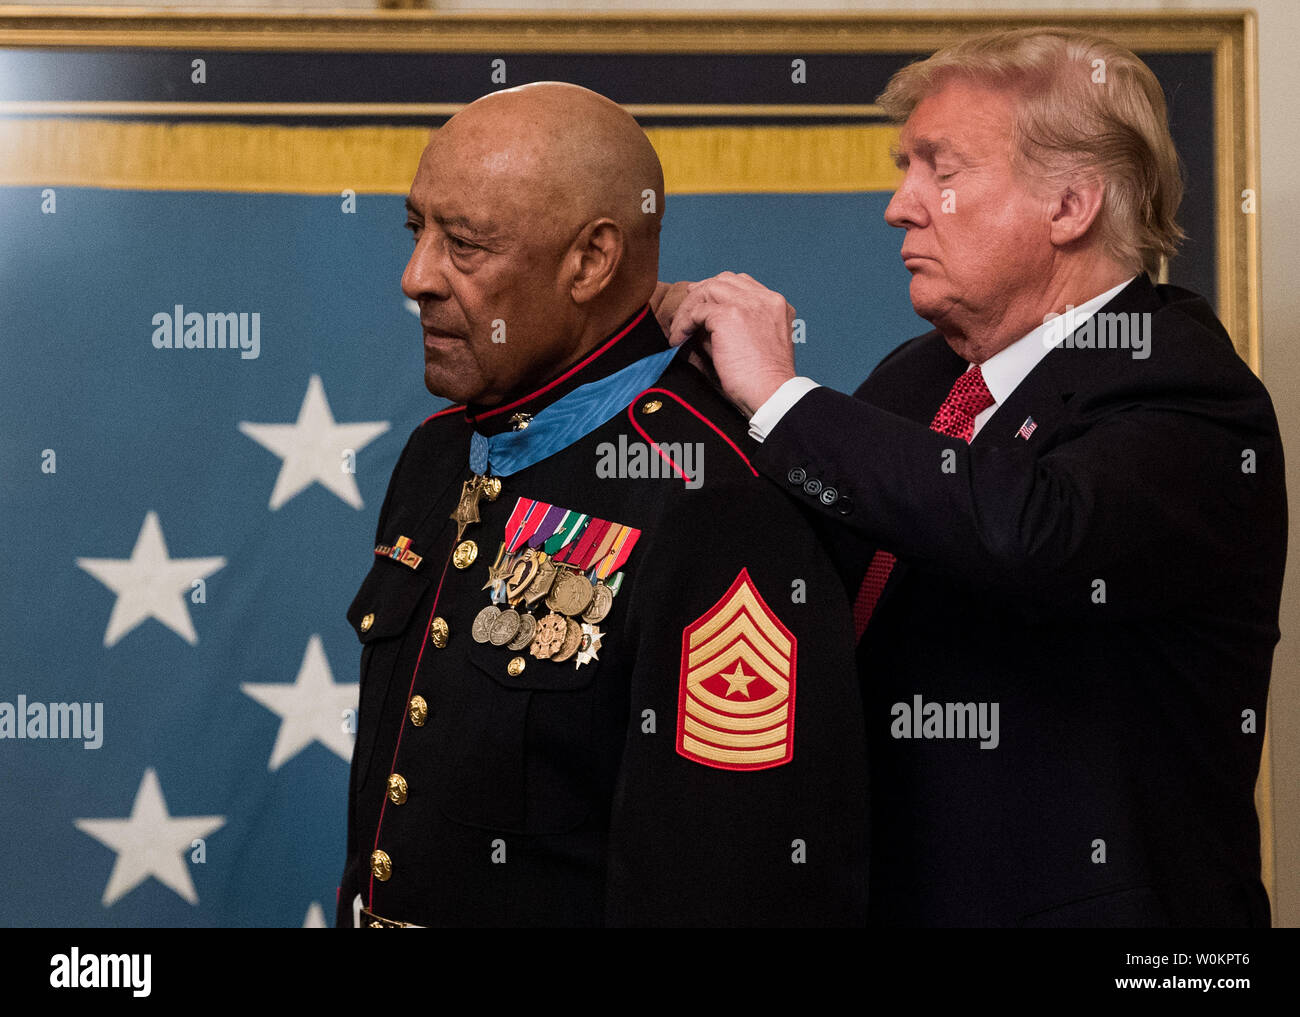 President Donald Trump awards the Medal of Honor to Sgt. Major John L. Canley, a retired member of the U.S. Marine Corps, during a ceremony at the White House in Washington, D.C. on October 17, 2018. Canley was honored for his heroic actions in Vietnam War in 1968. Photo by Kevin Dietsch/UPI Stock Photo